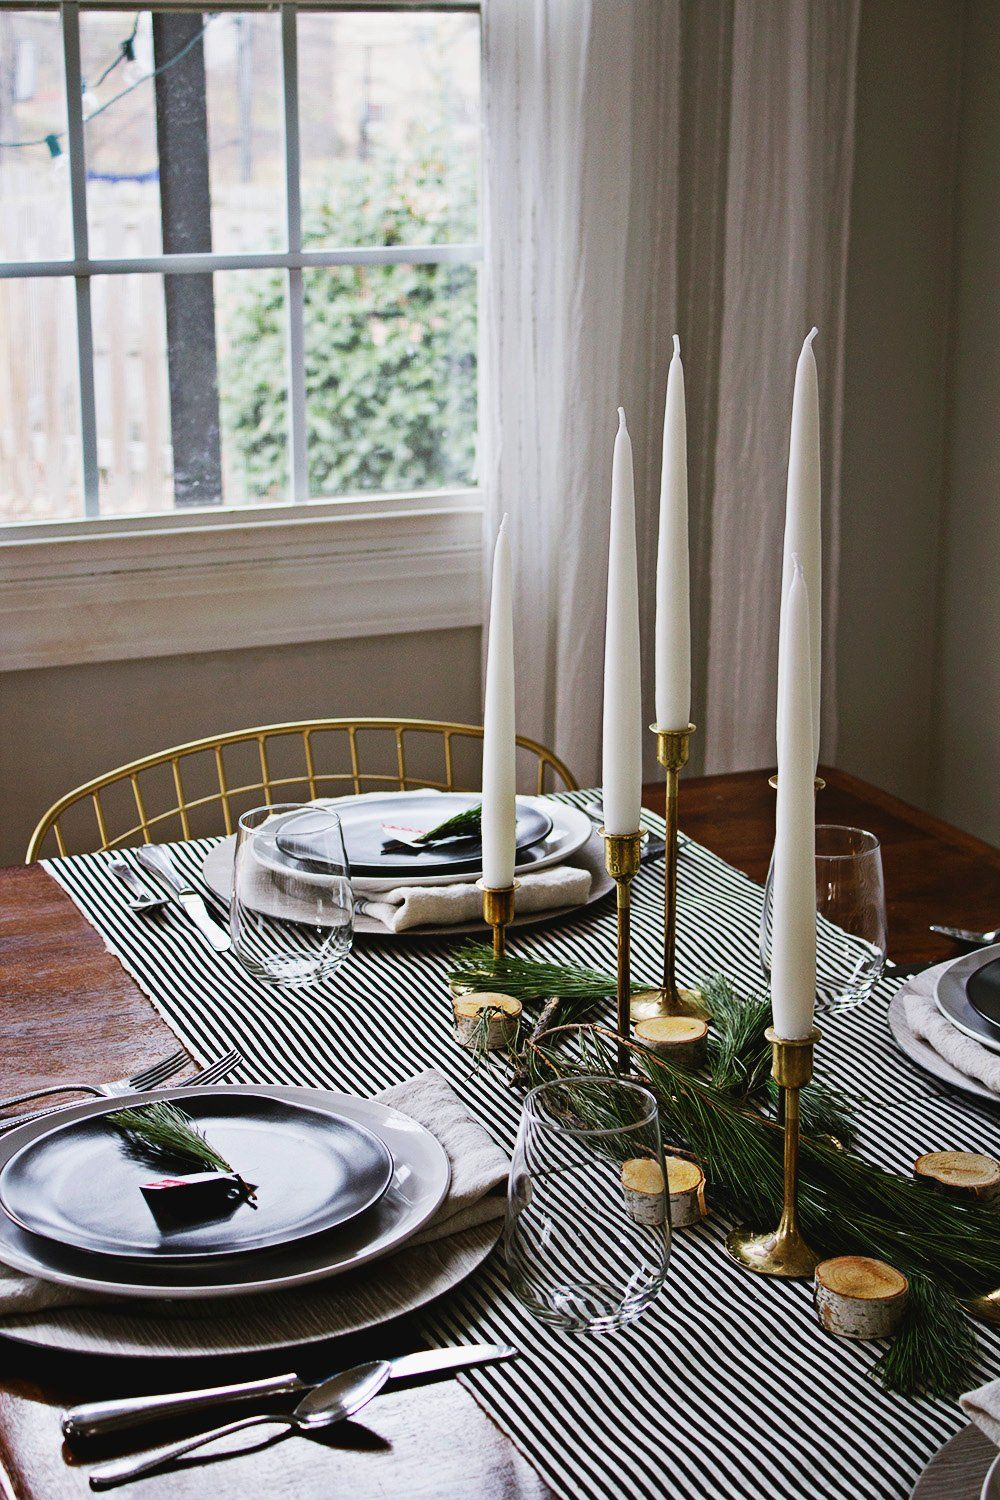 How to Do Christmas Table Decorations Like a Pro Just in Time